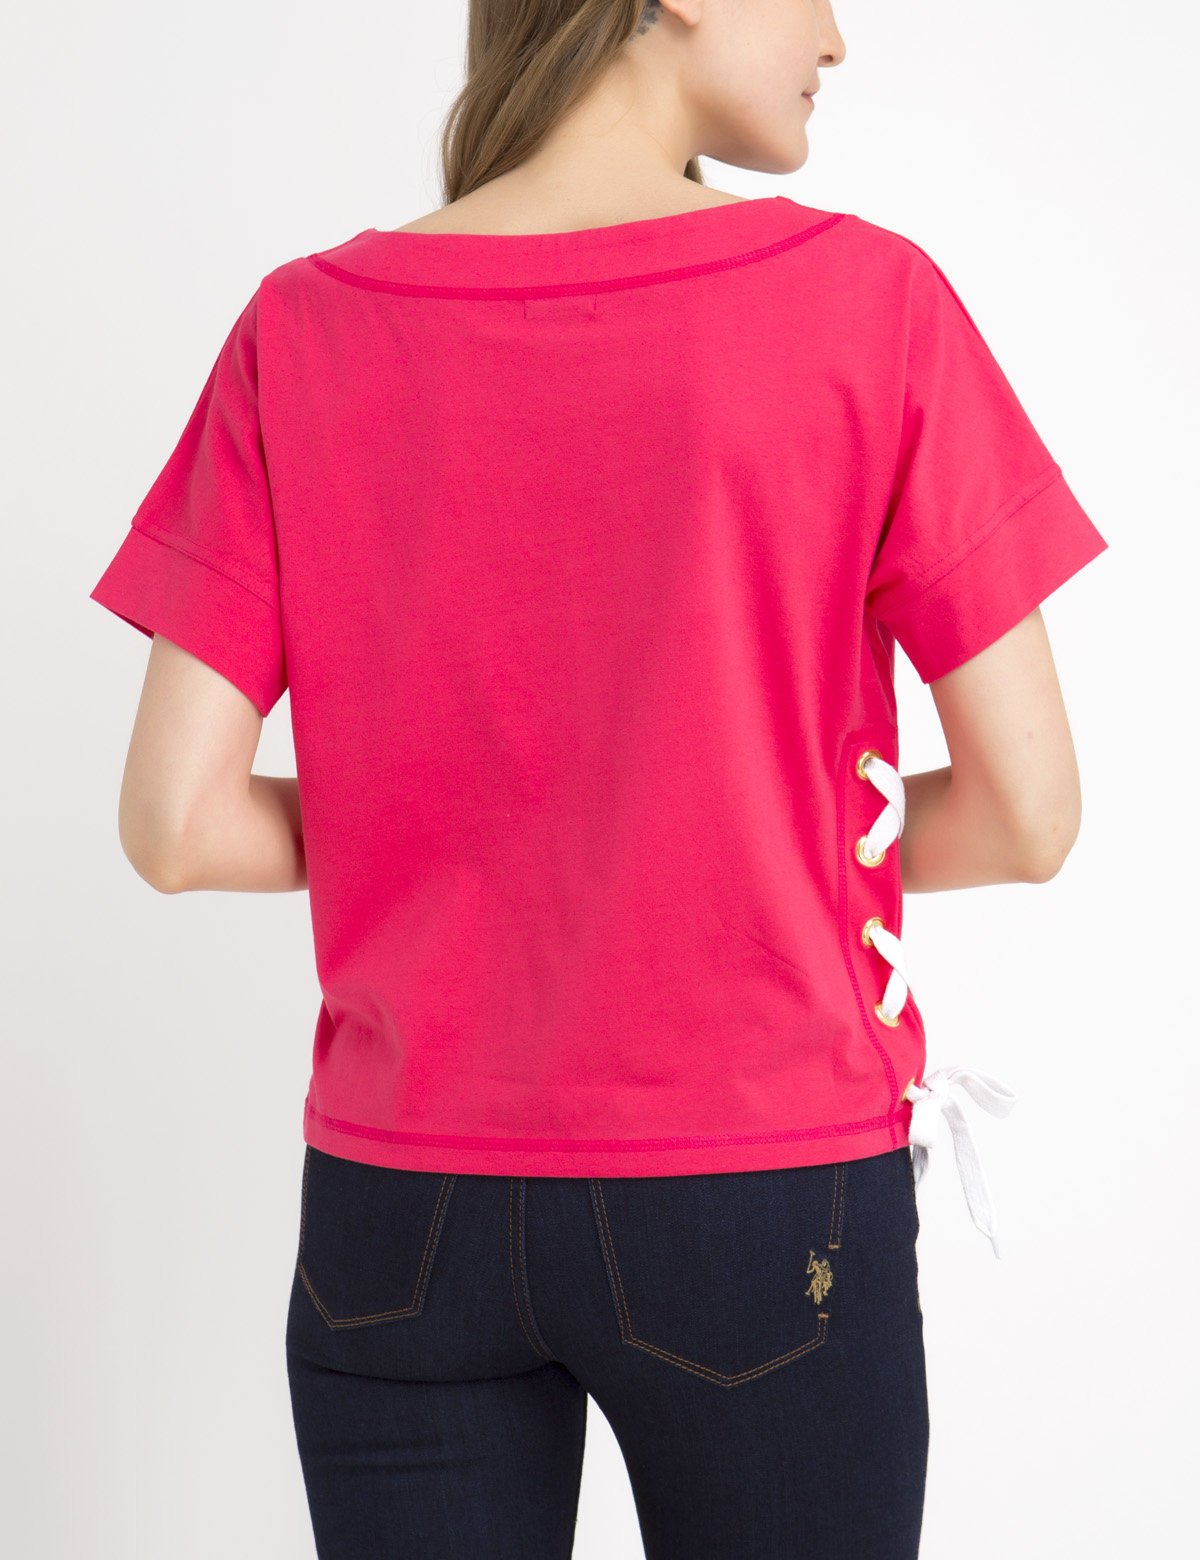 SOLID LACEUP T-SHIRT - U.S. Polo Assn.